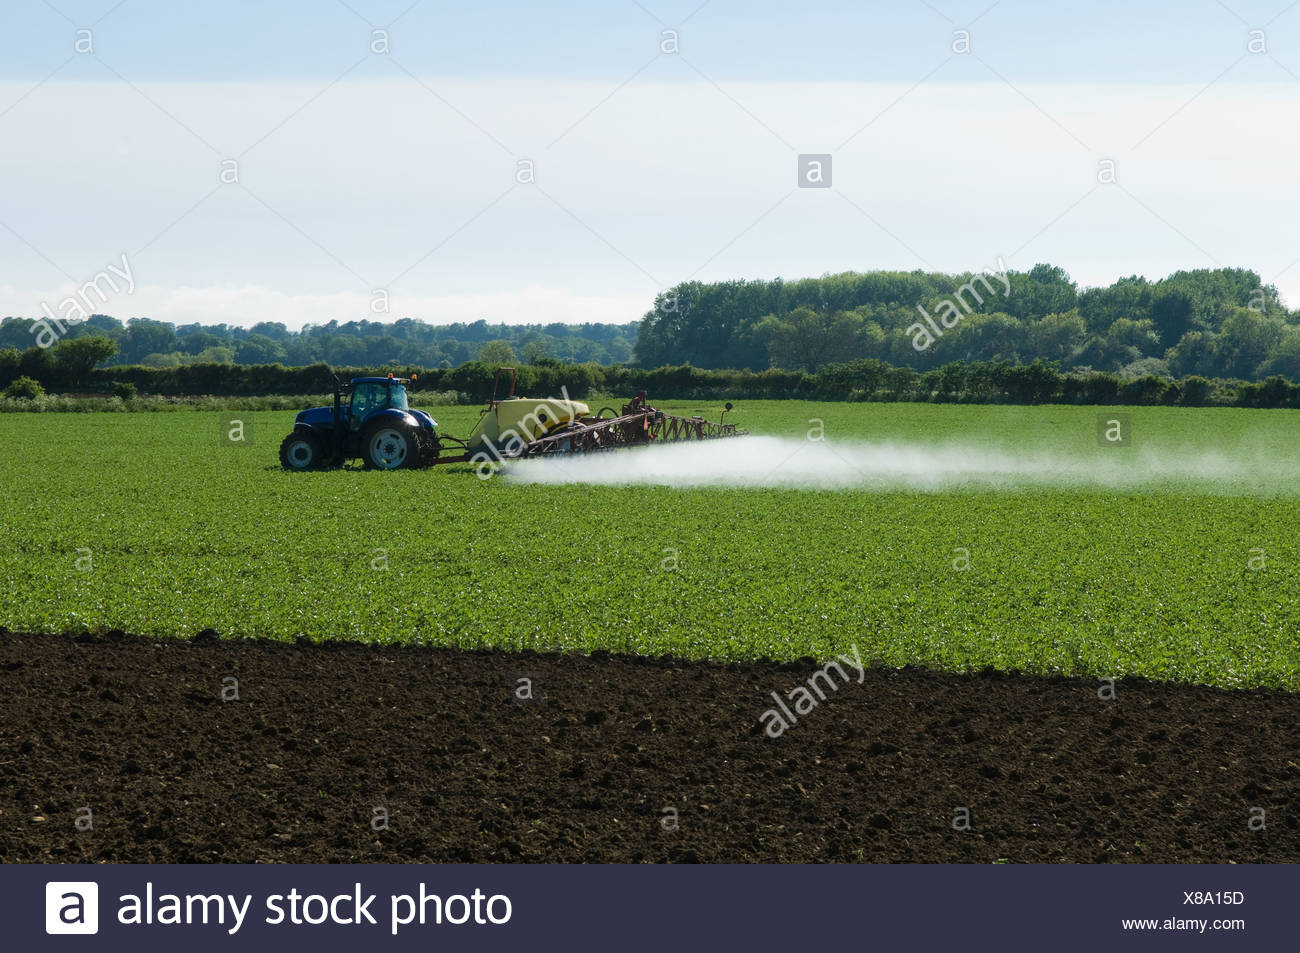 Tractor and crop sprayer spraying in field - Stock Image